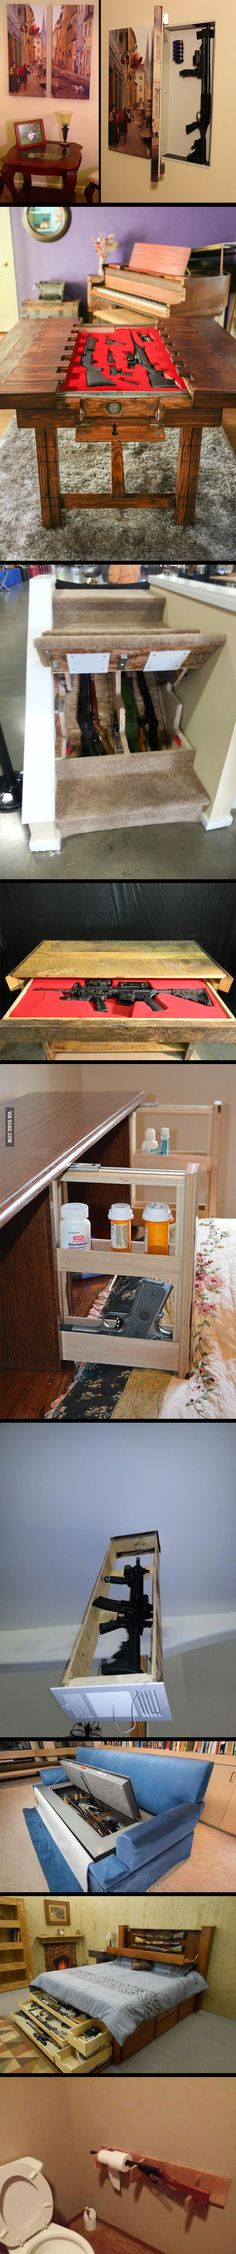 Clever and clandestine ways people hide guns - 9GAG